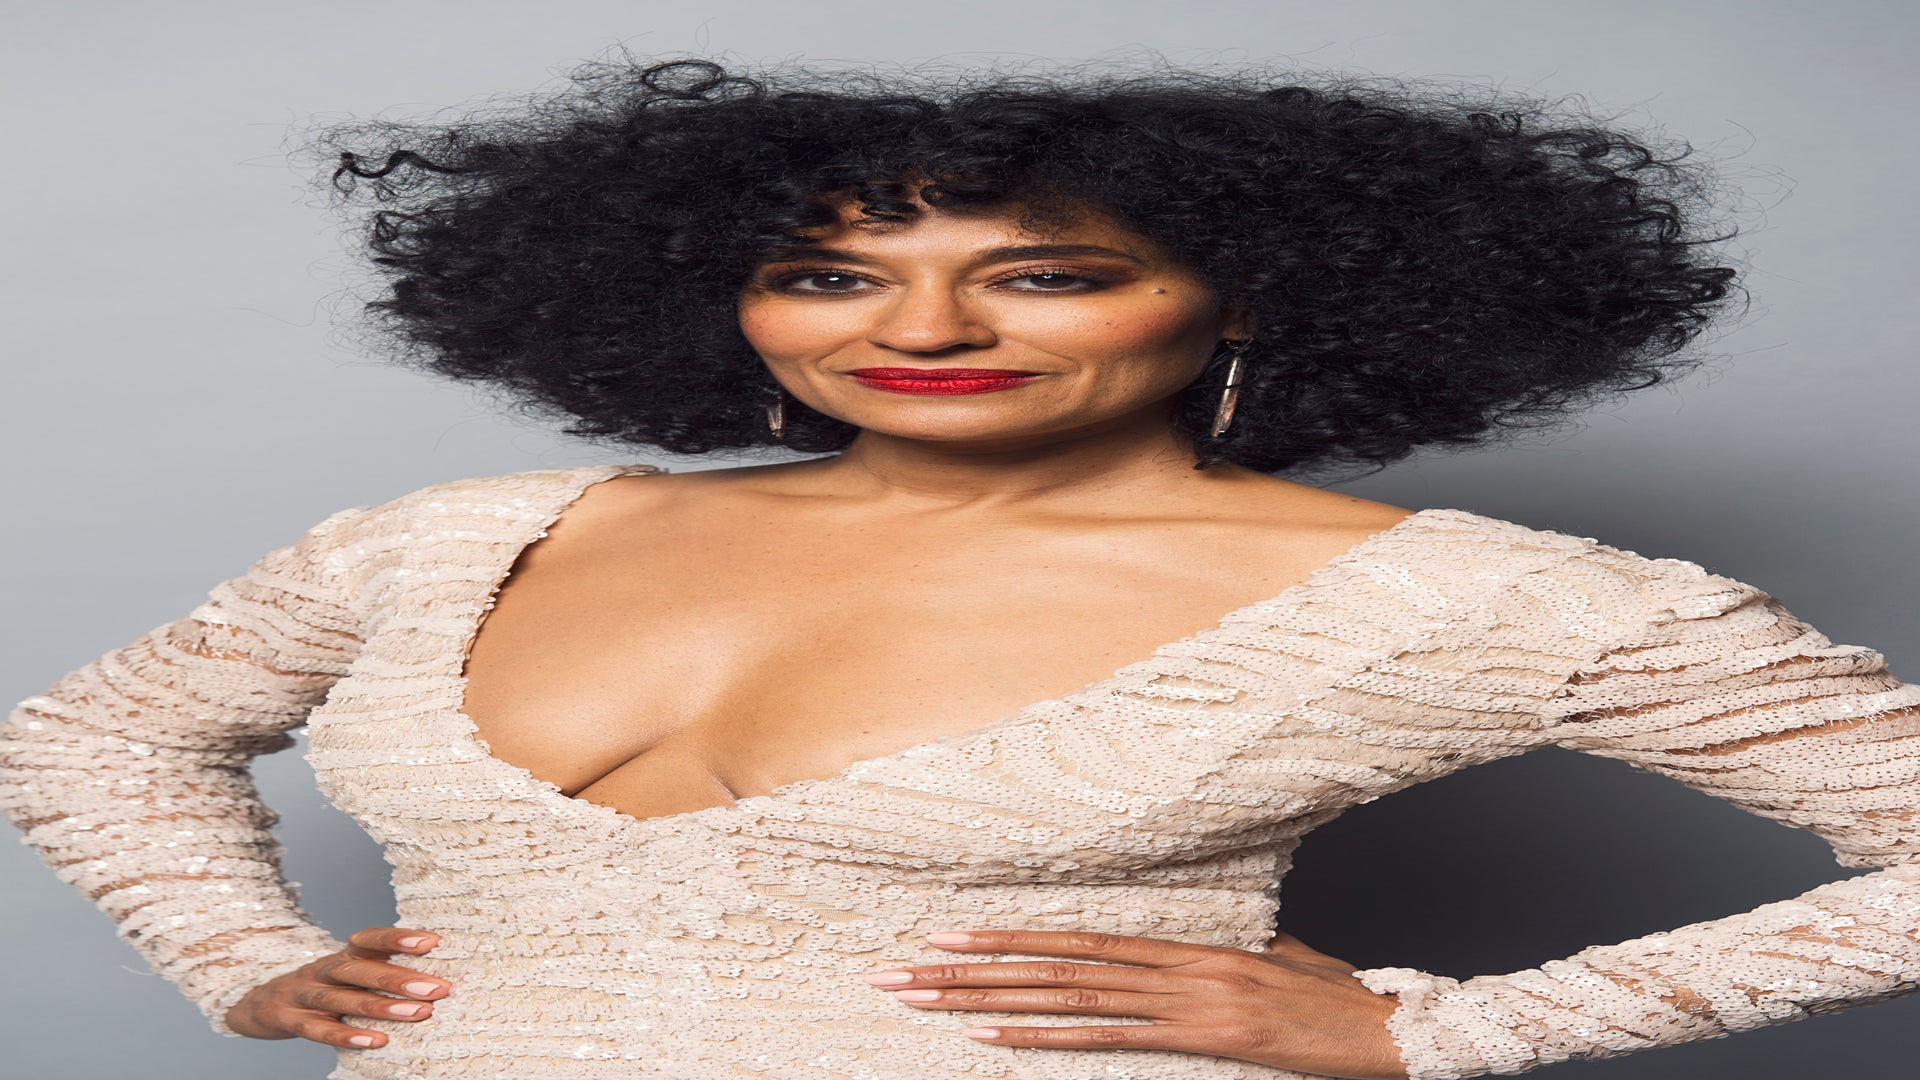 For Tracee Ellis Ross, Pain Is A Way To Learn